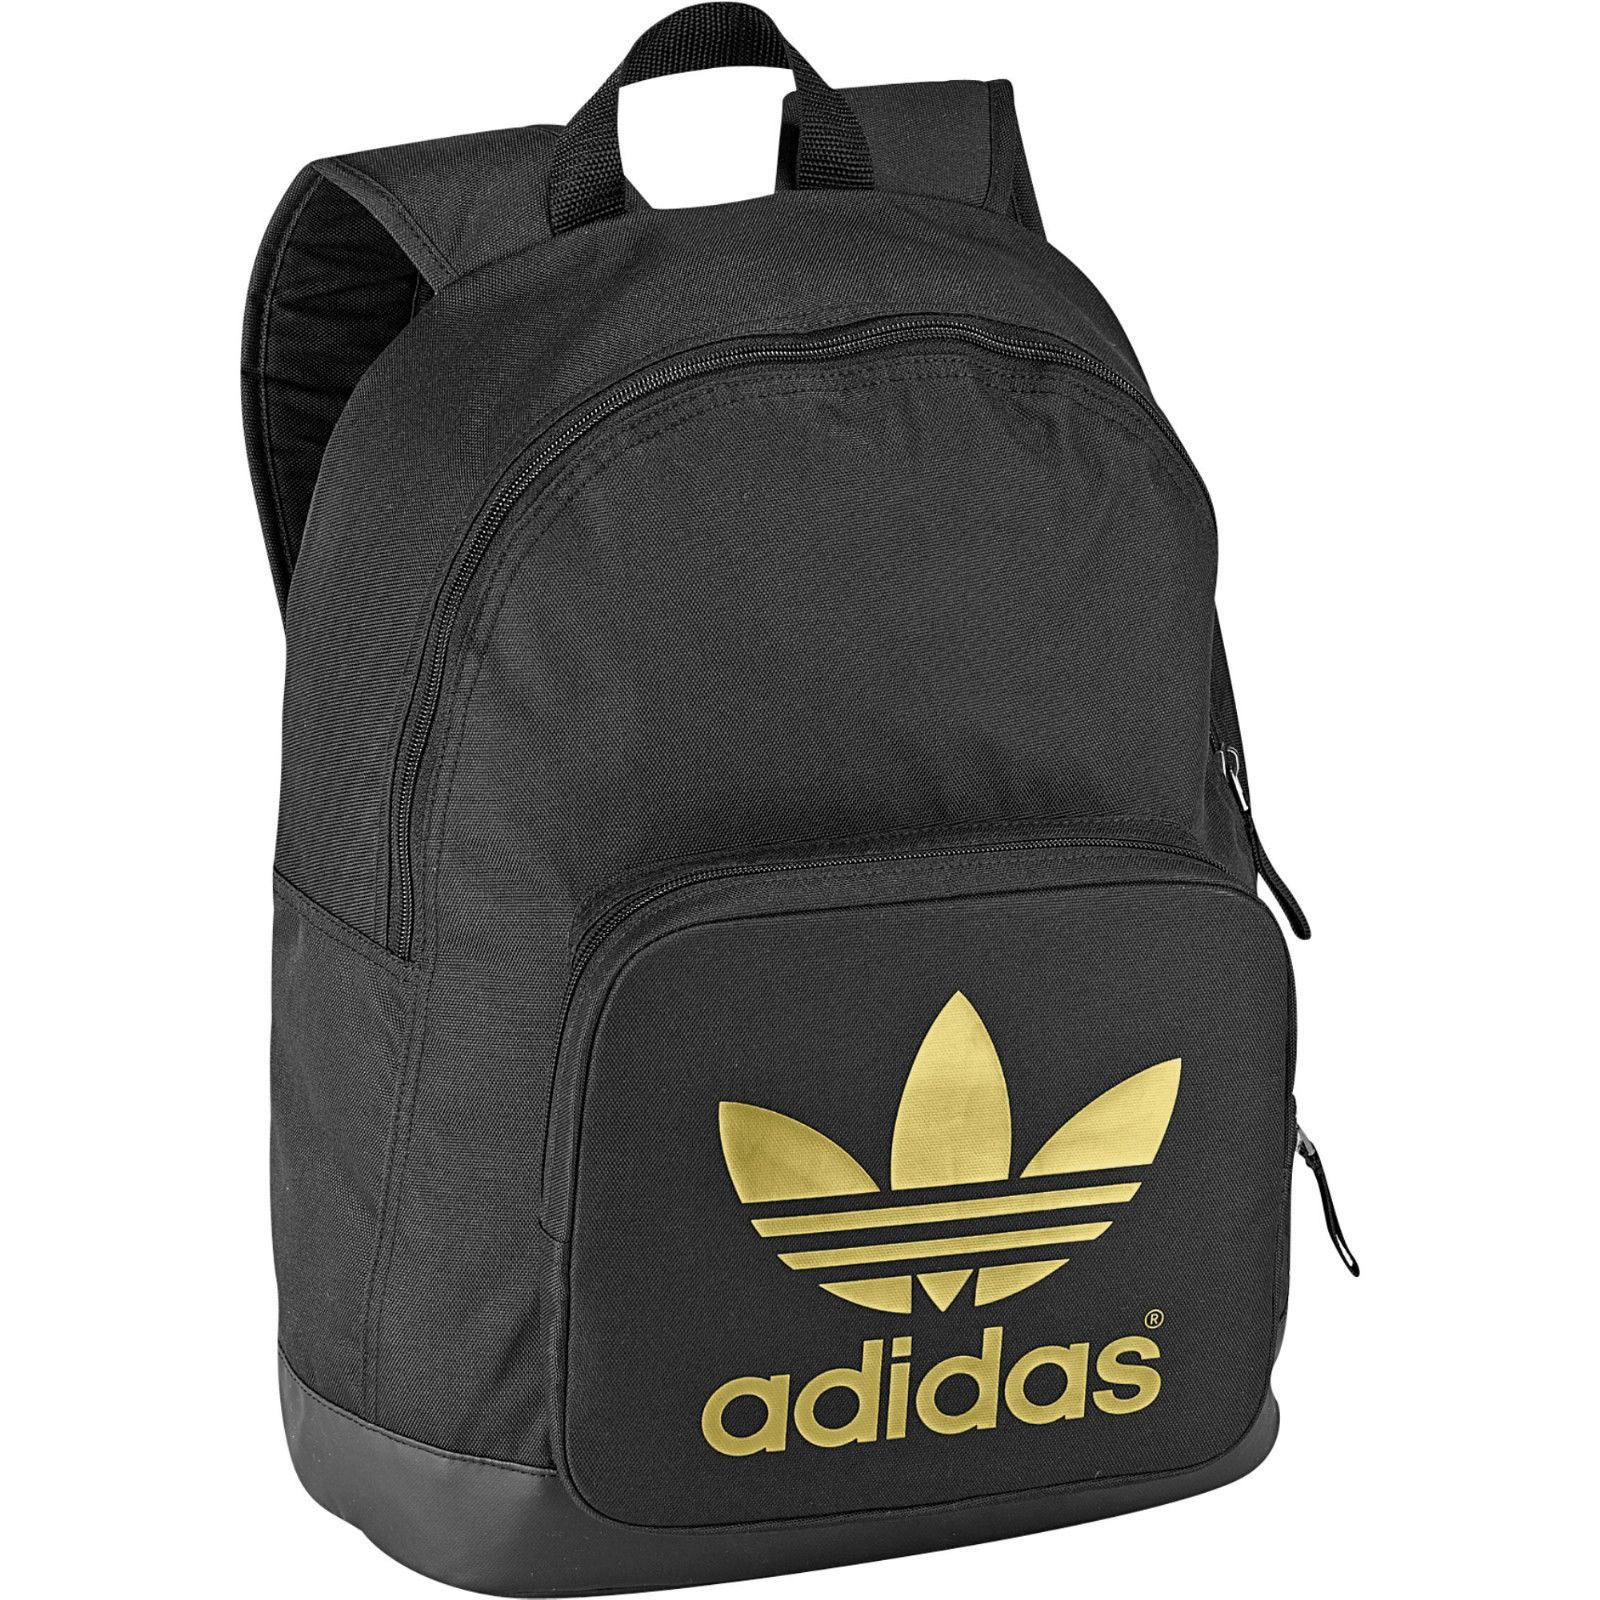 adidas originals backpacks mens boys girls adidas school